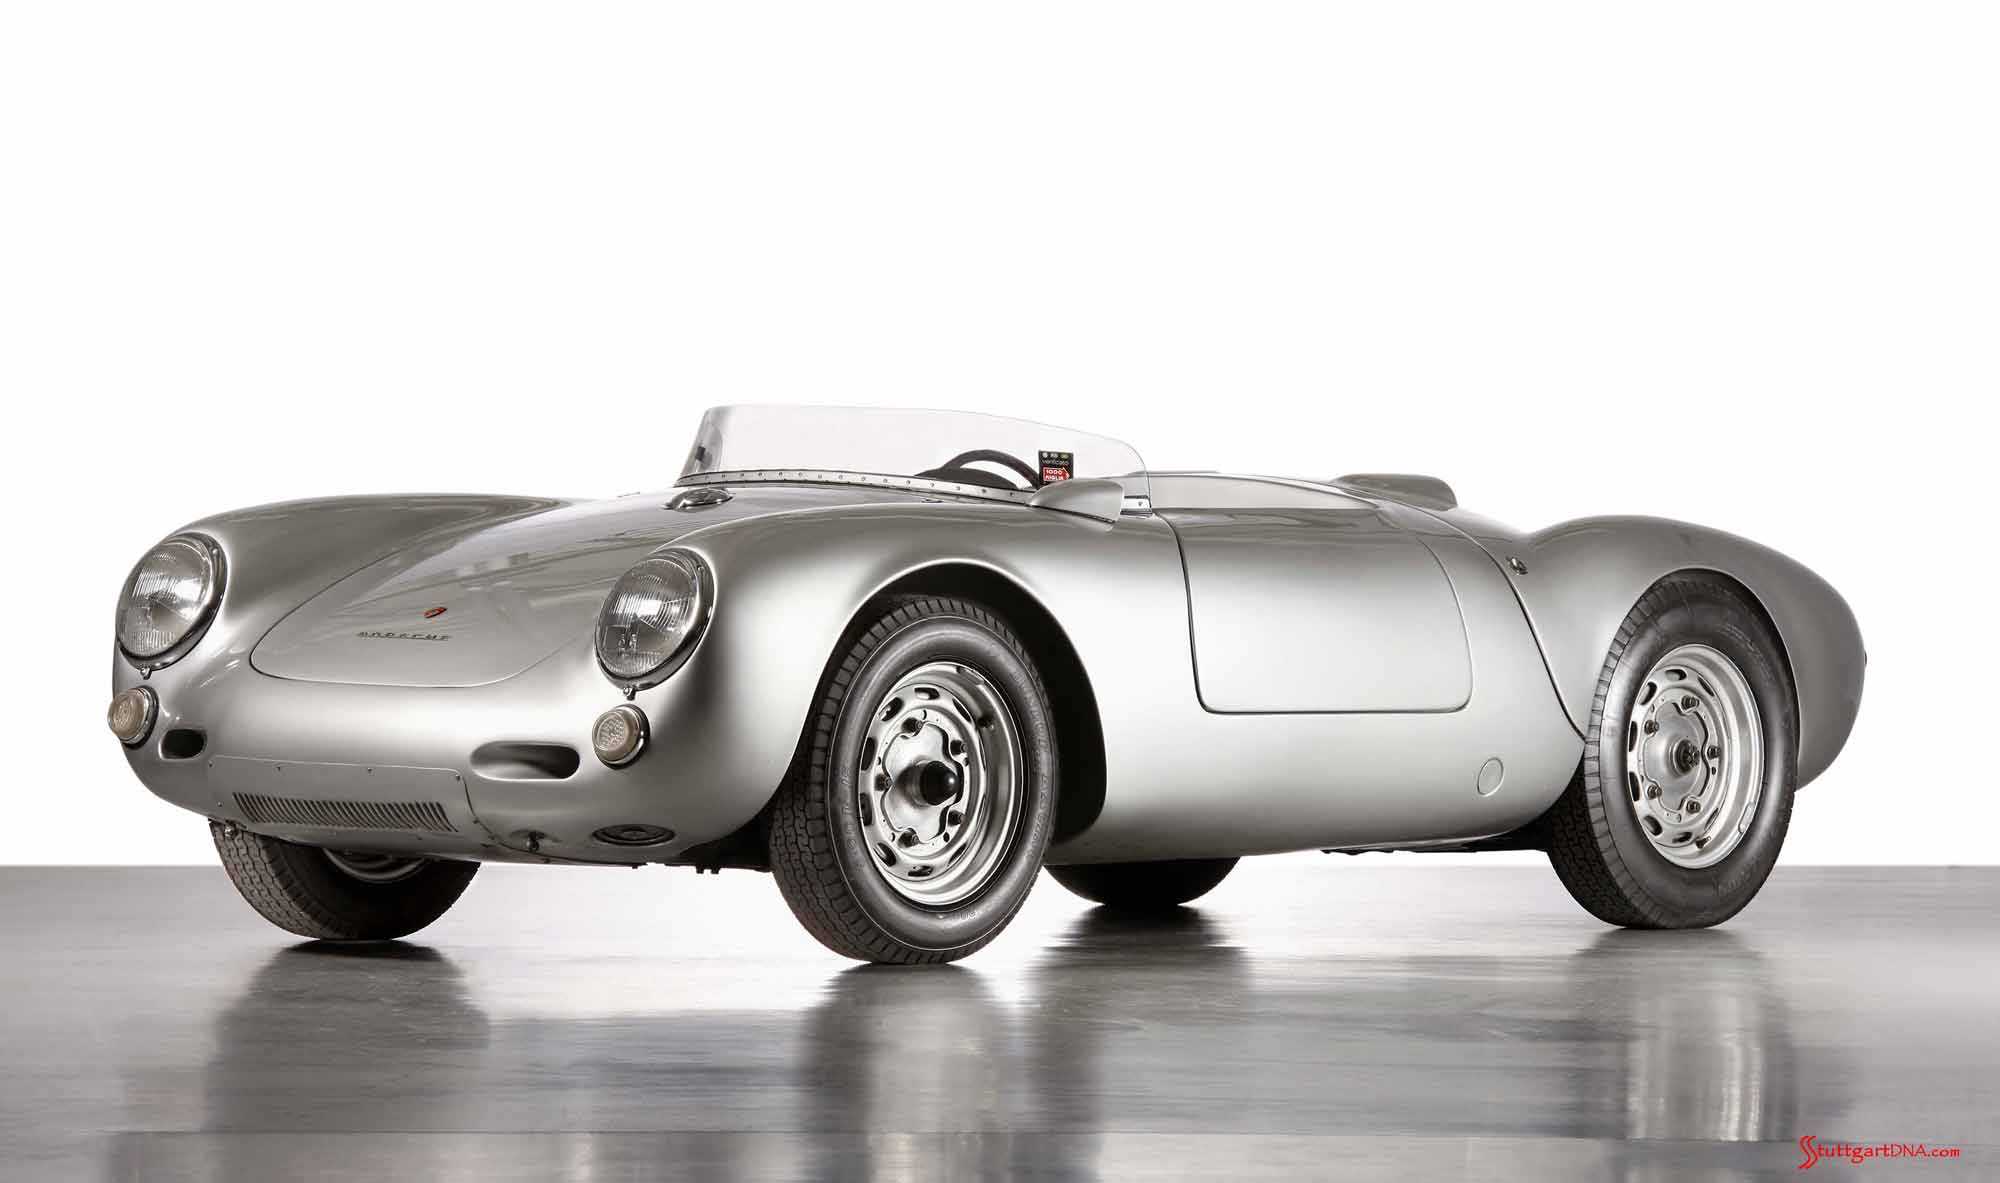 How to choose the best car insurance - Porsche supercars: 550 Spyder, 1953, left front. Credit: Porsche AG